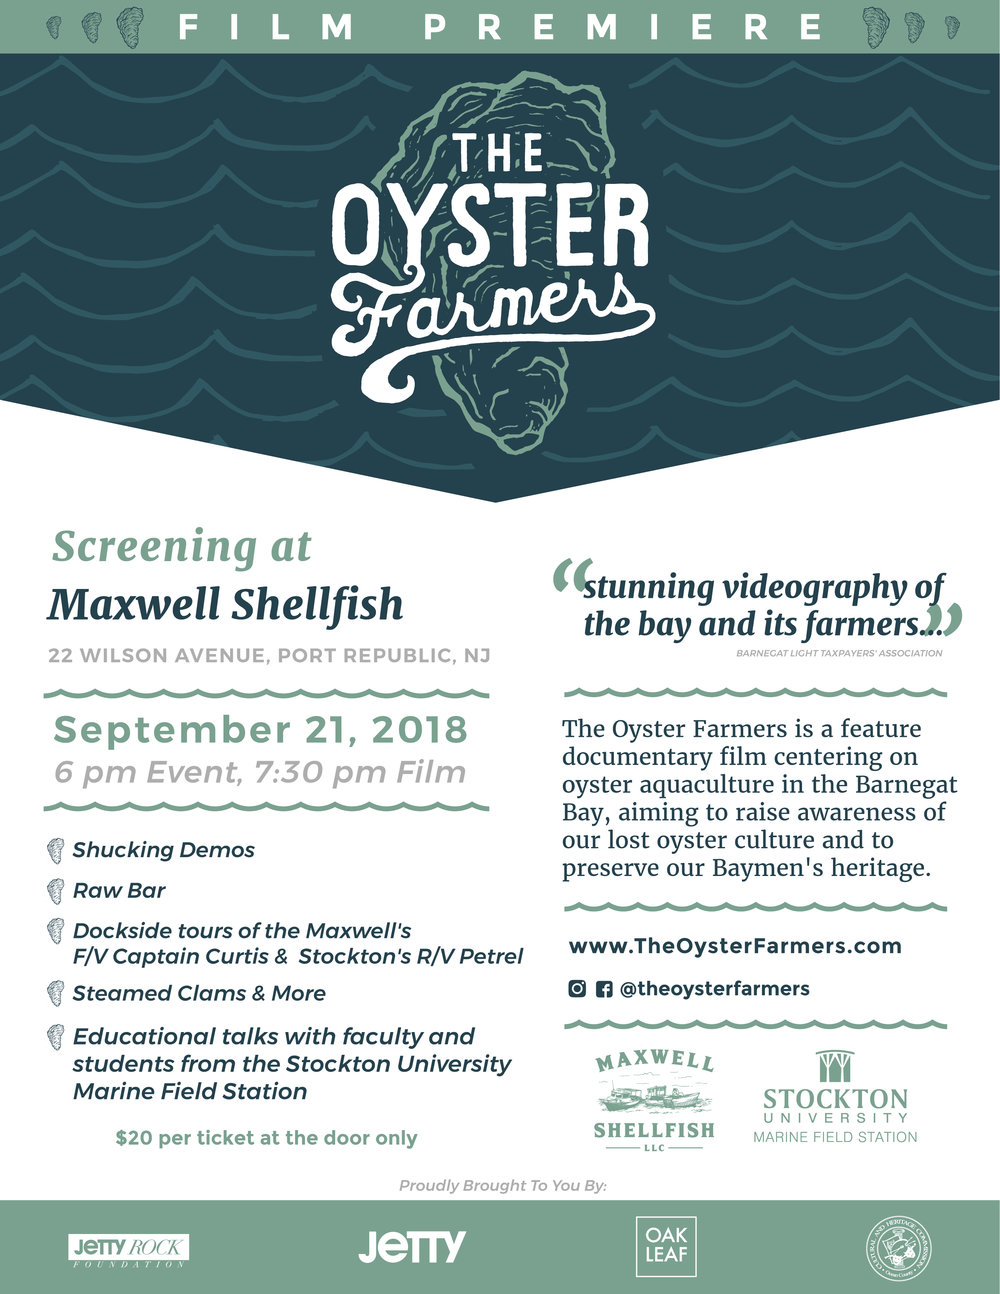 Oyster Farmers Film Premier Flyer-Maxwell_WEB copy.jpg